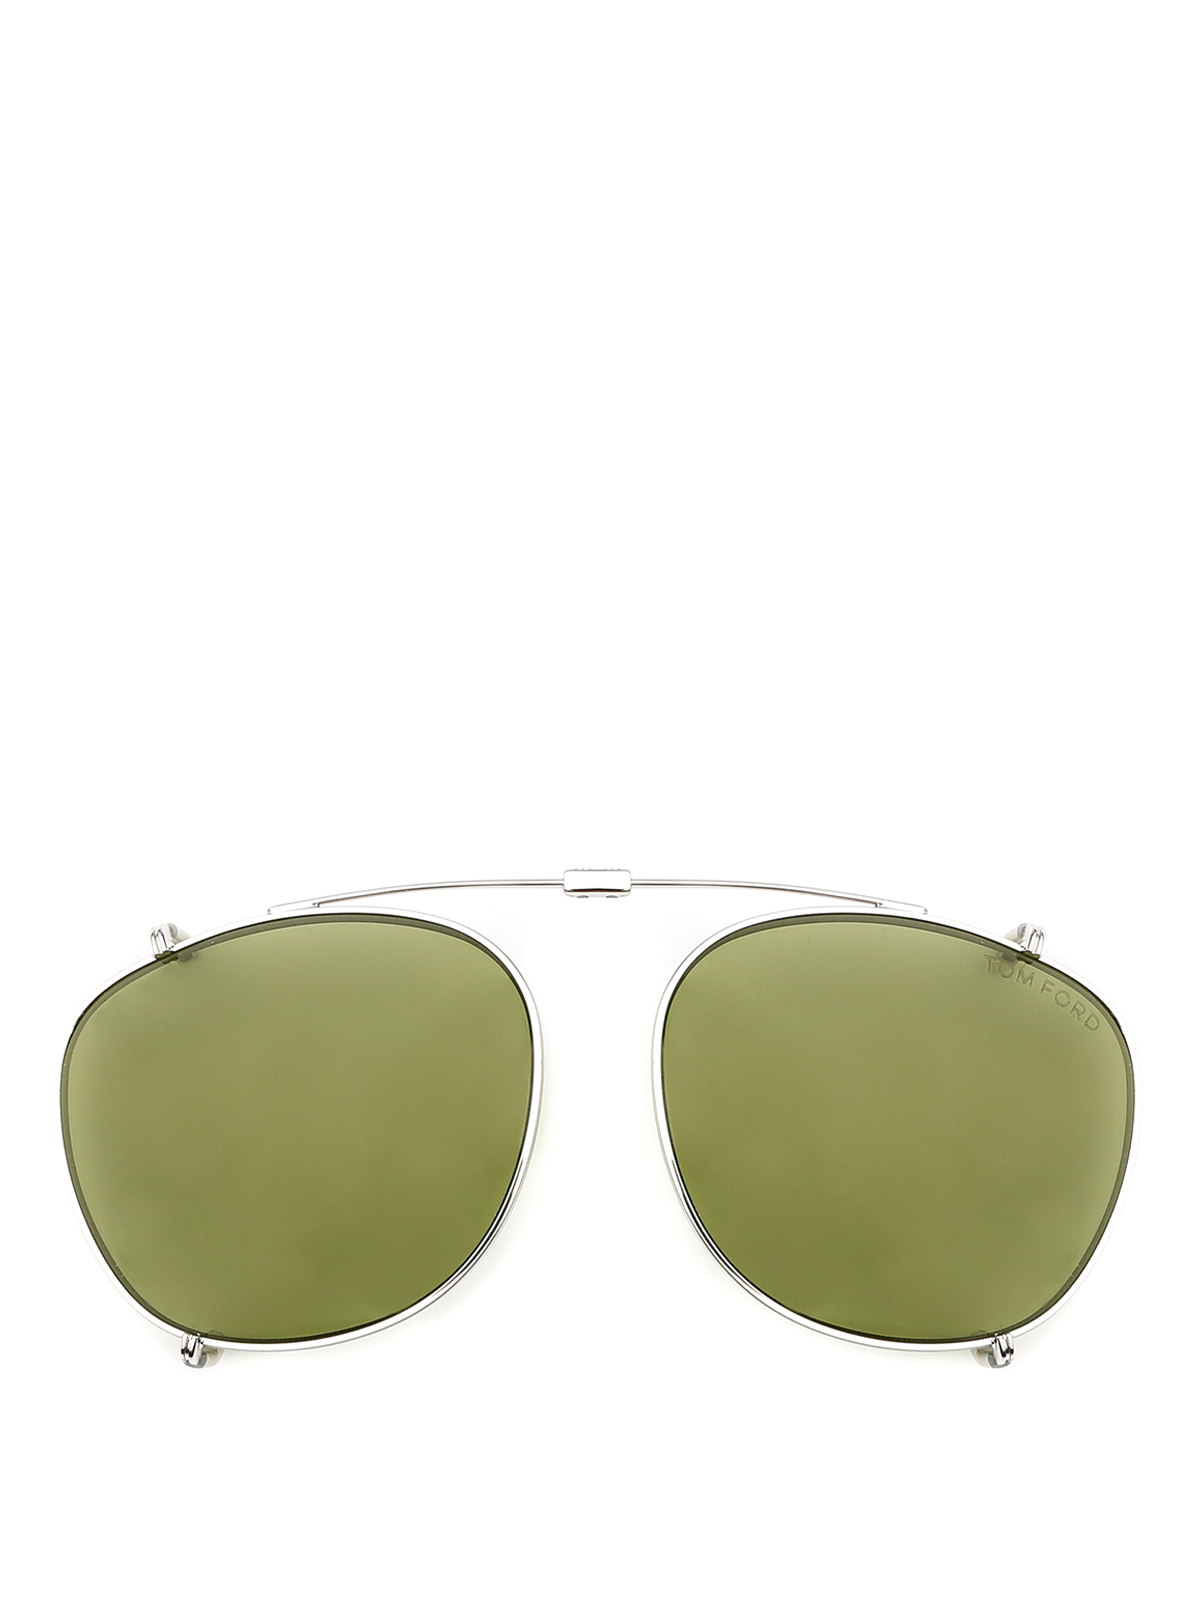 878386d309 TOM FORD  sunglasses - Clip On sunglasses with green lenses